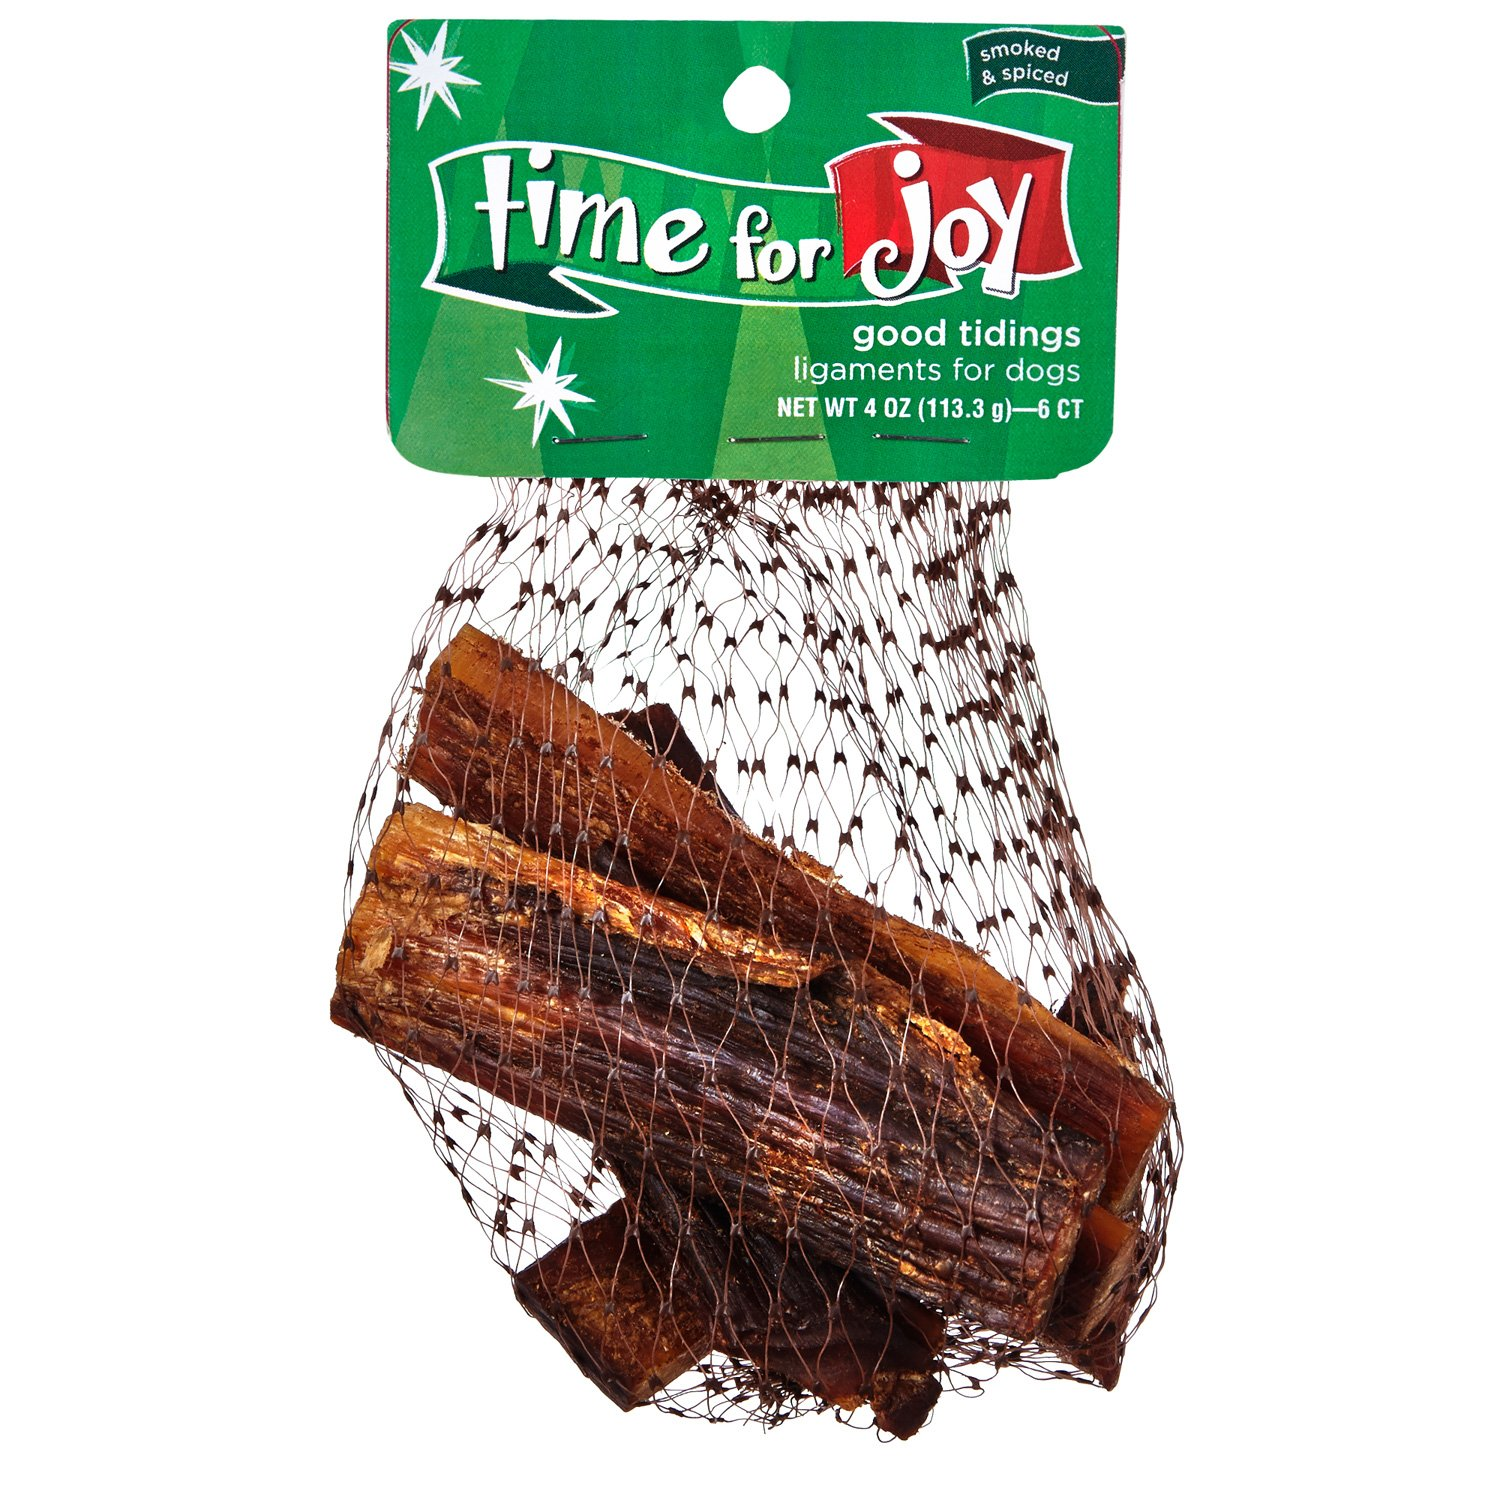 Petco Holiday Smoked & Spiced Dog Bones